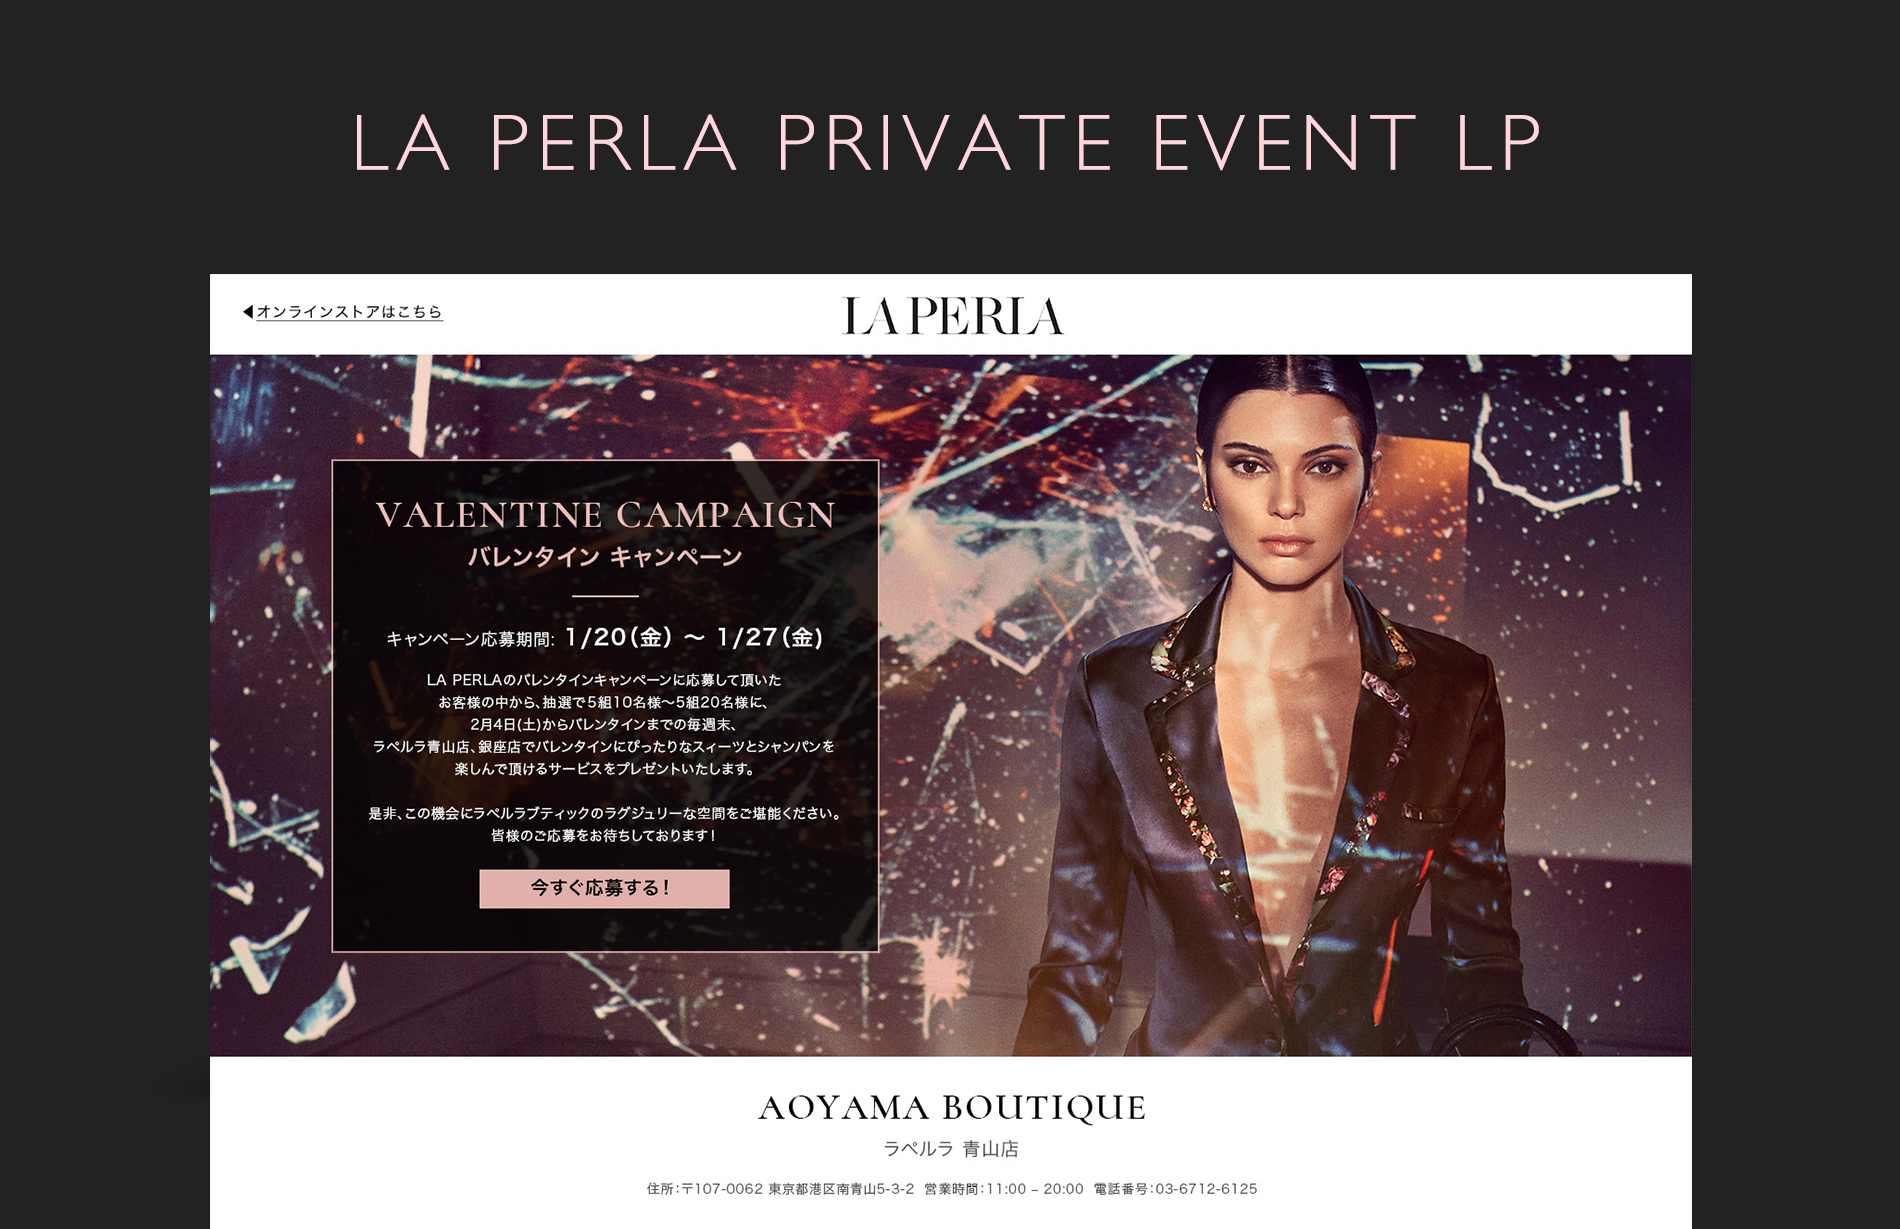 La Perla private event LP